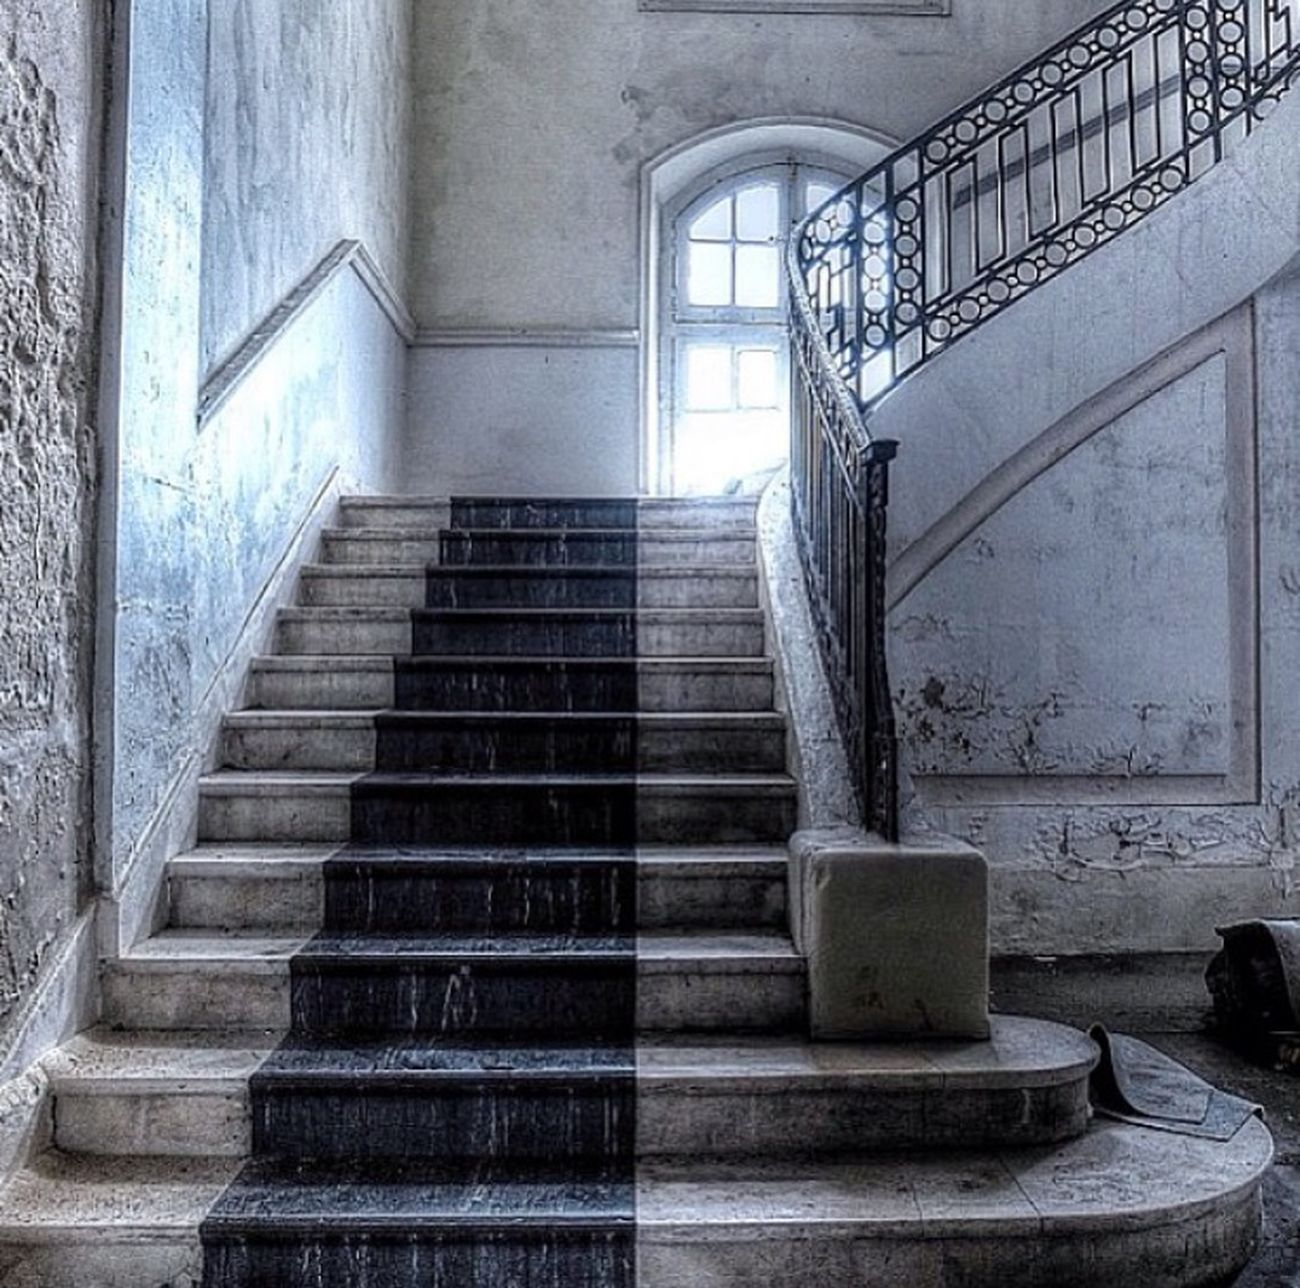 Abandoned stairs... Urbex Beauty Of Decay Decay Old Vintage France Beautiful Urbanexploration Abandoned Beautyofdecay